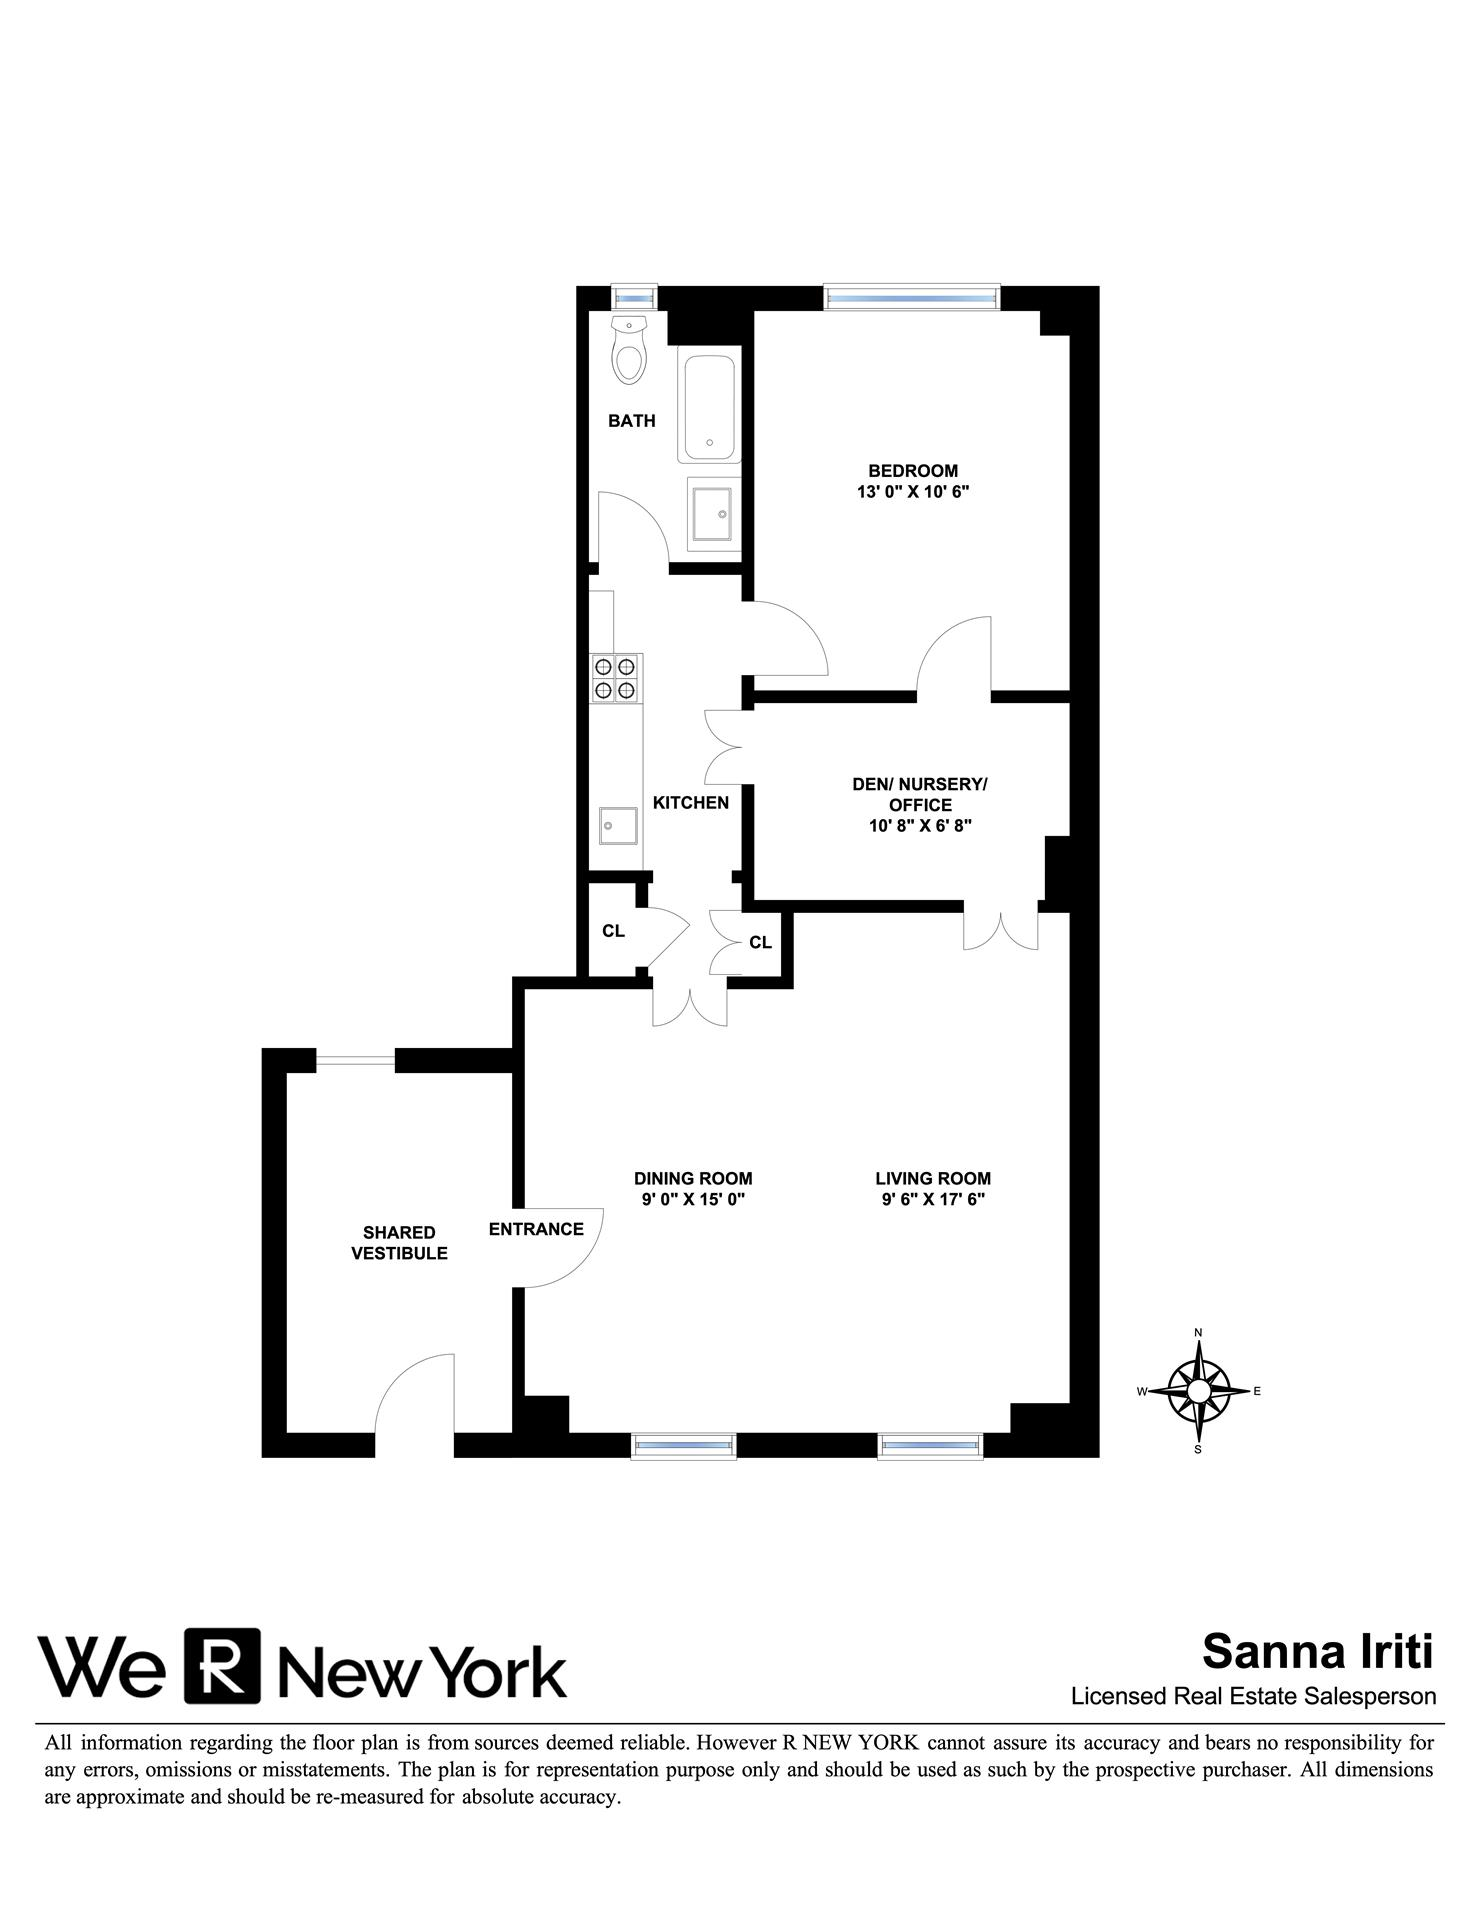 49 East 96th Street Carnegie Hill New York NY 10128